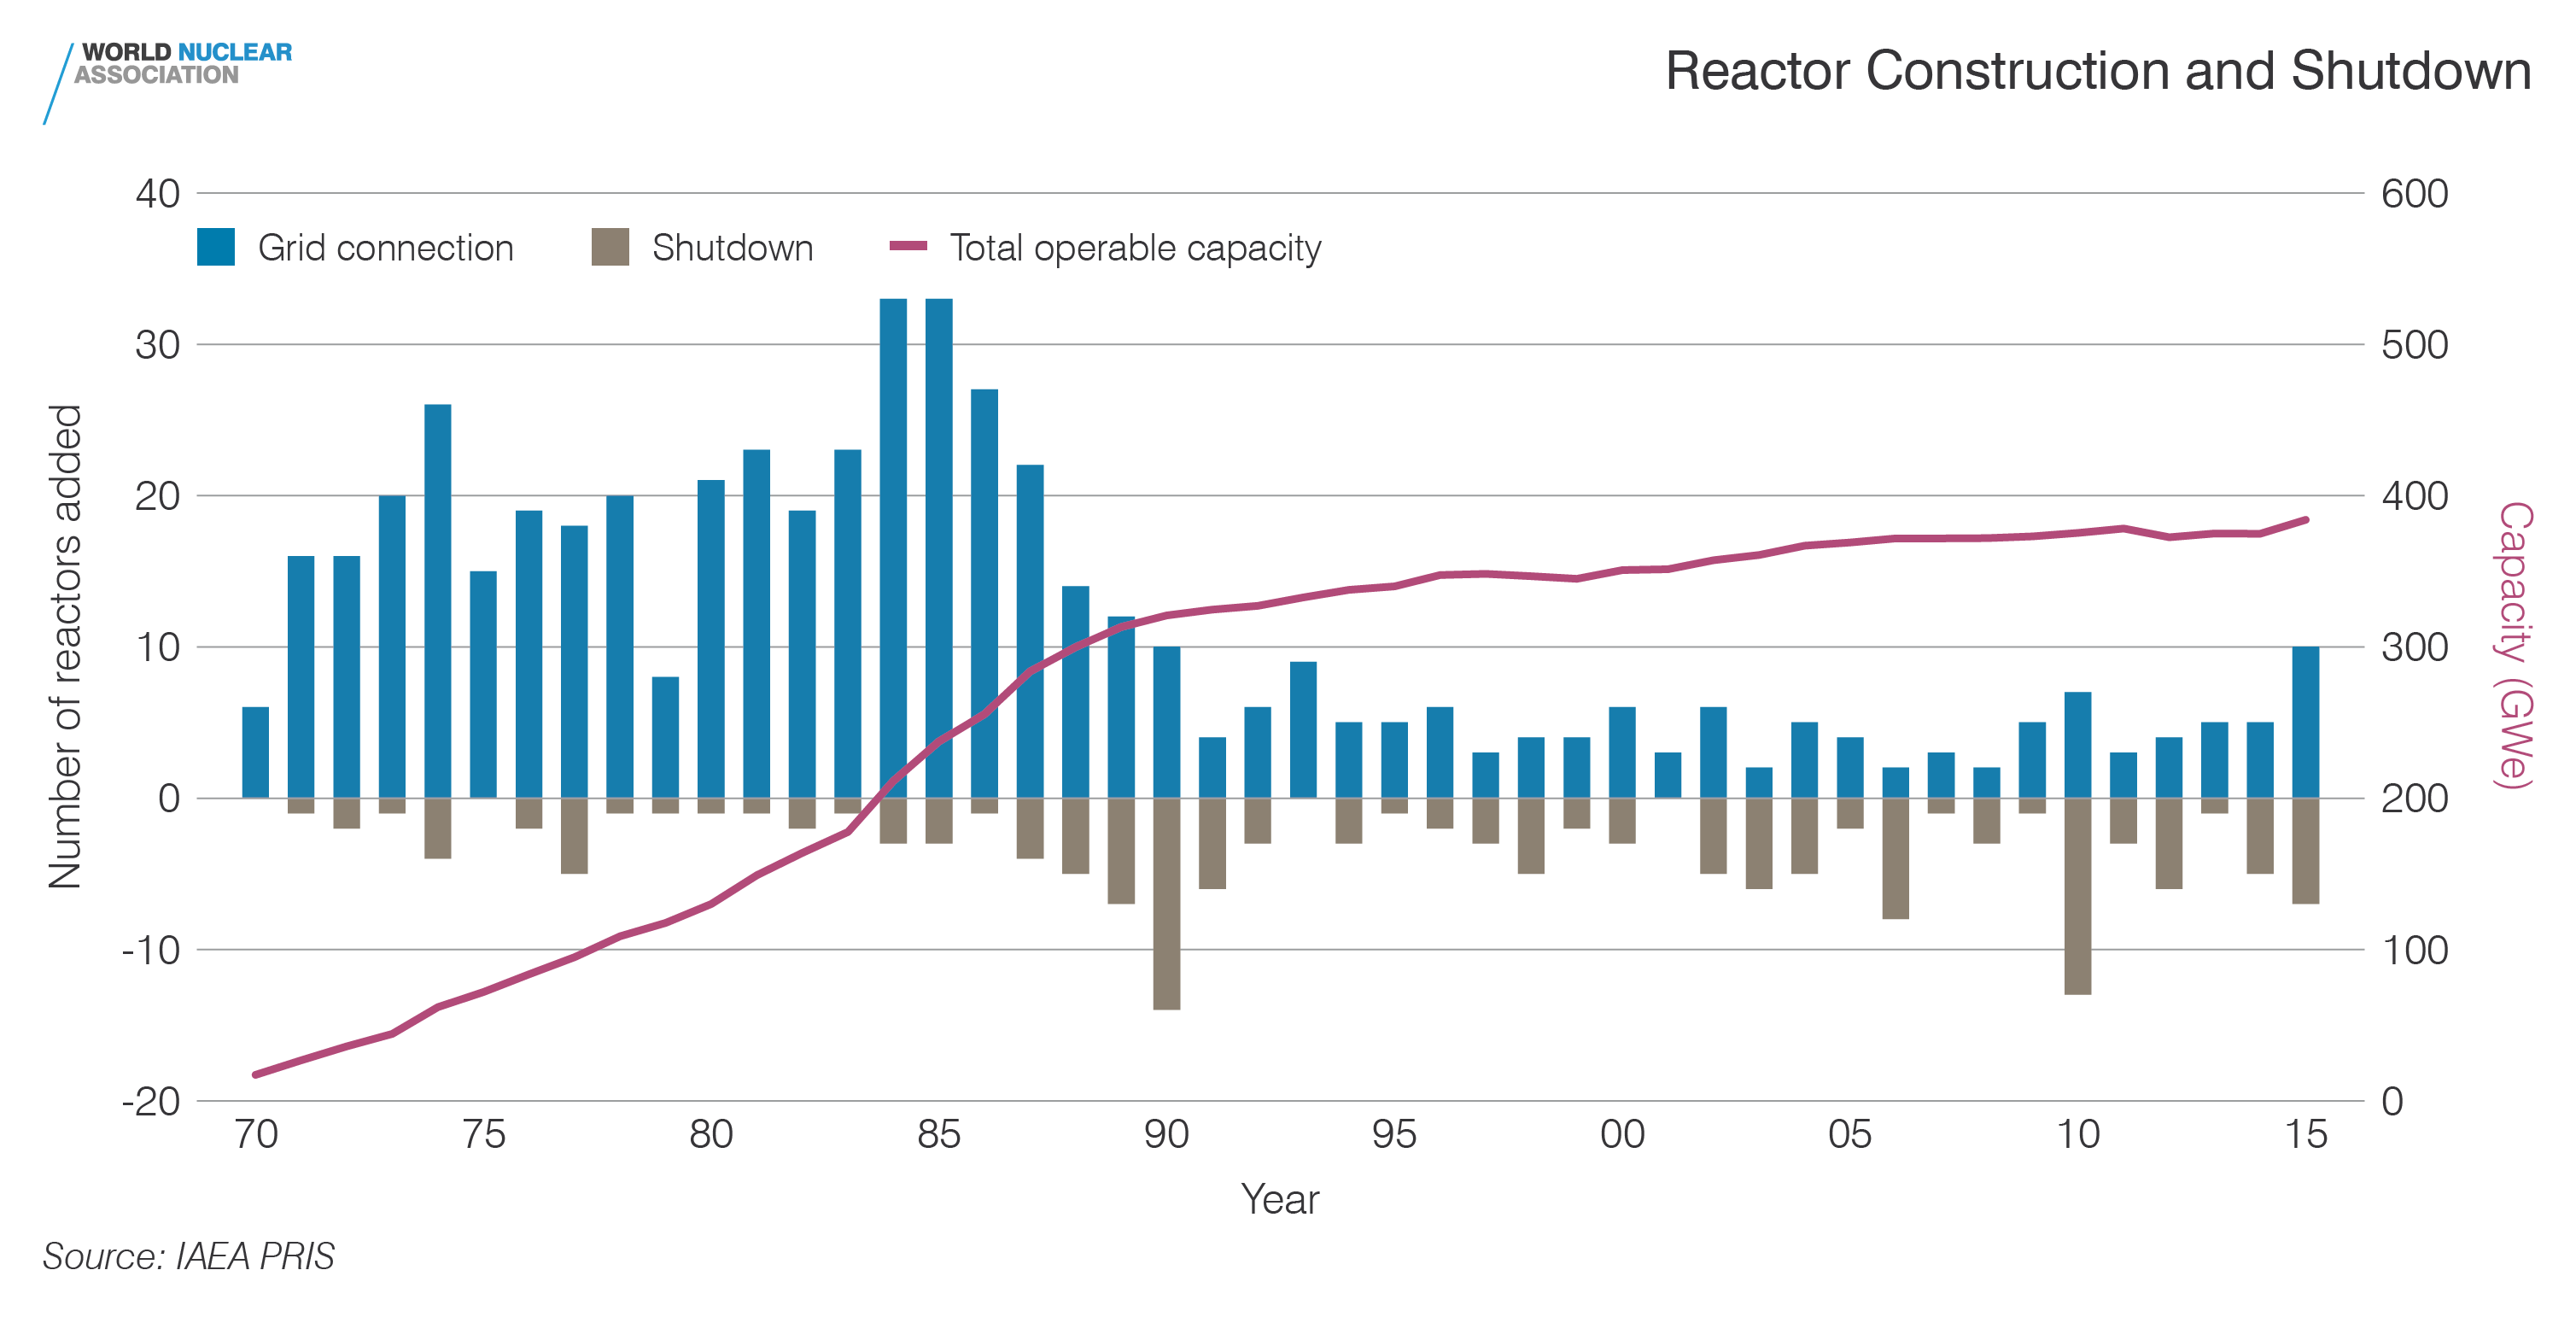 Reactor construction and shutdown